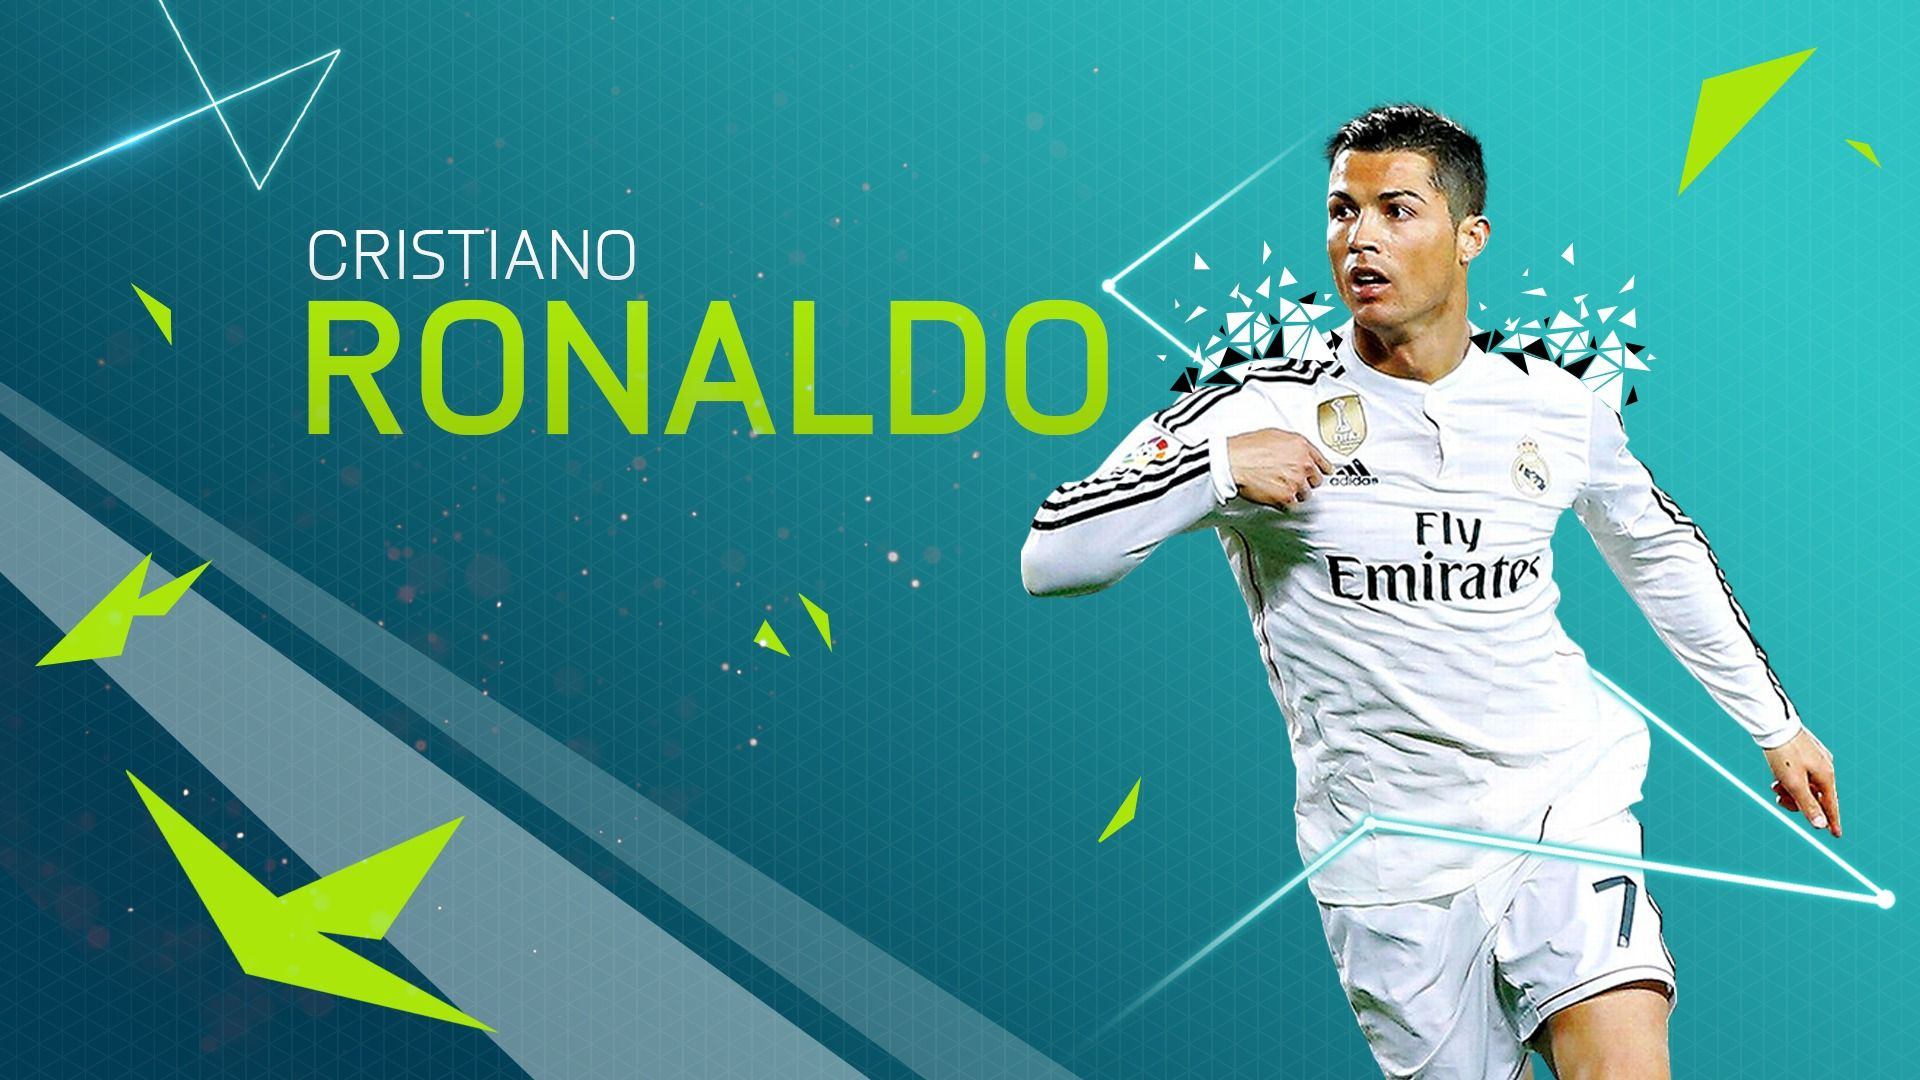 Fifa  Cristiano Ronaldo Wallpaper By Gofast On Youtube Hd Wallpapers P Sports Wallpapers